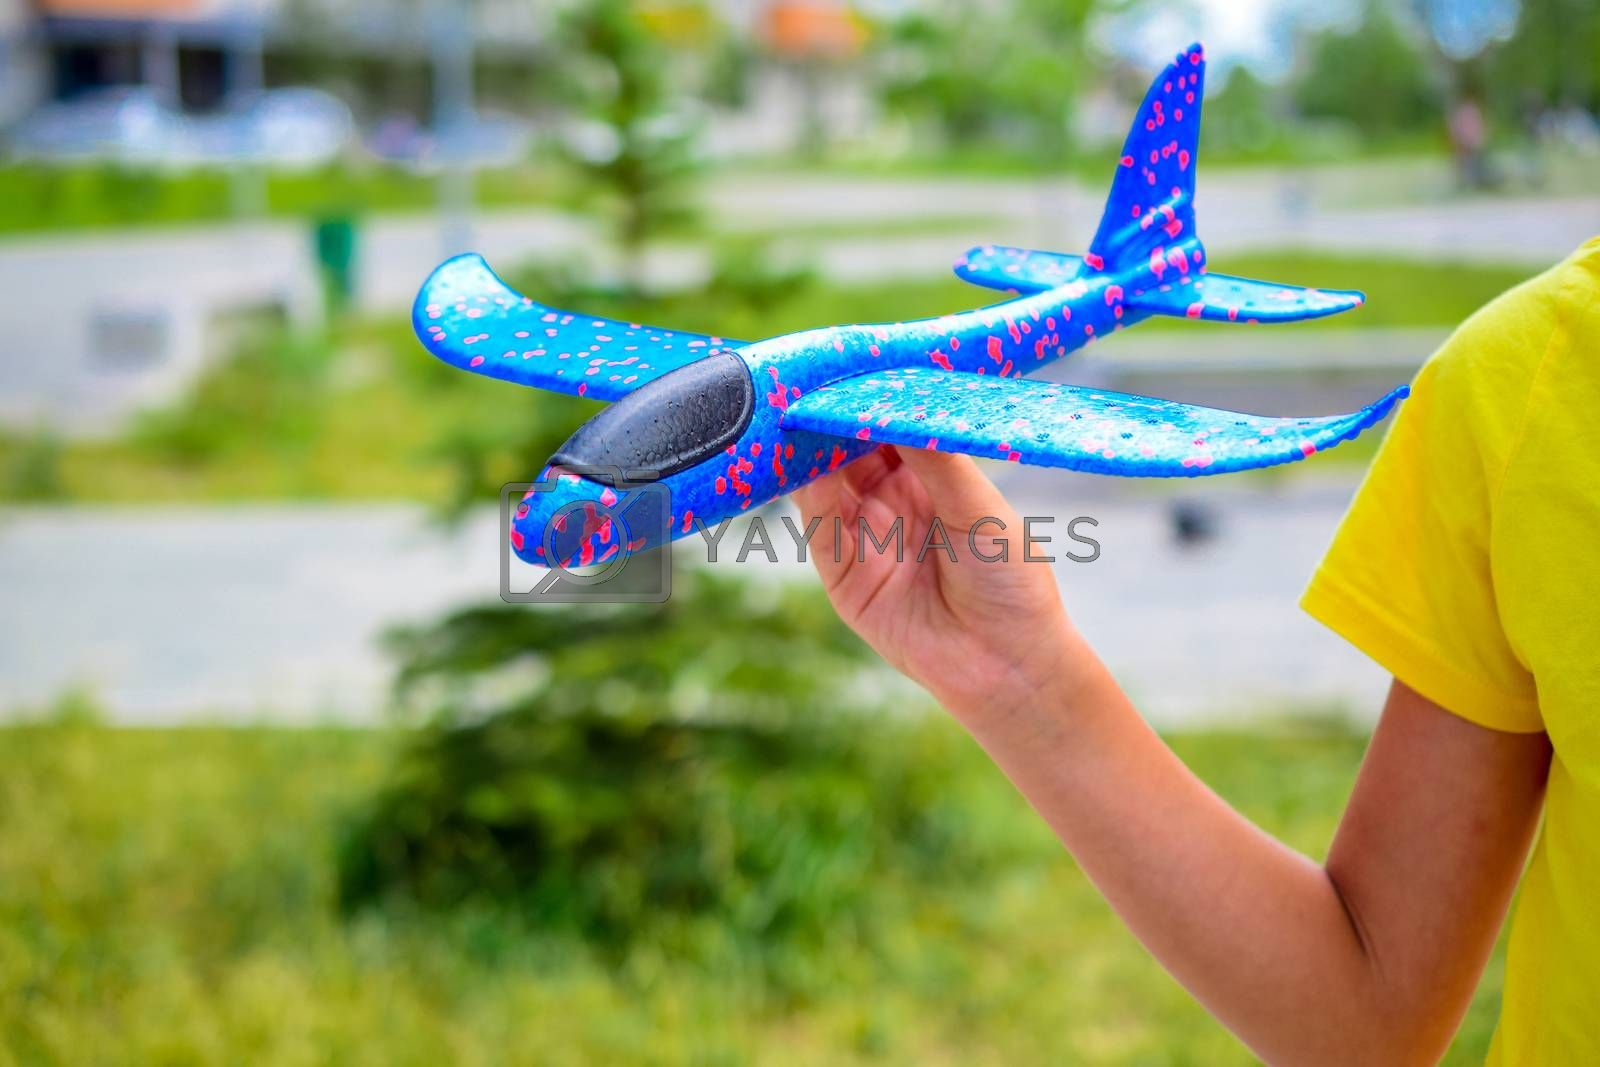 a child plays with a model airplane